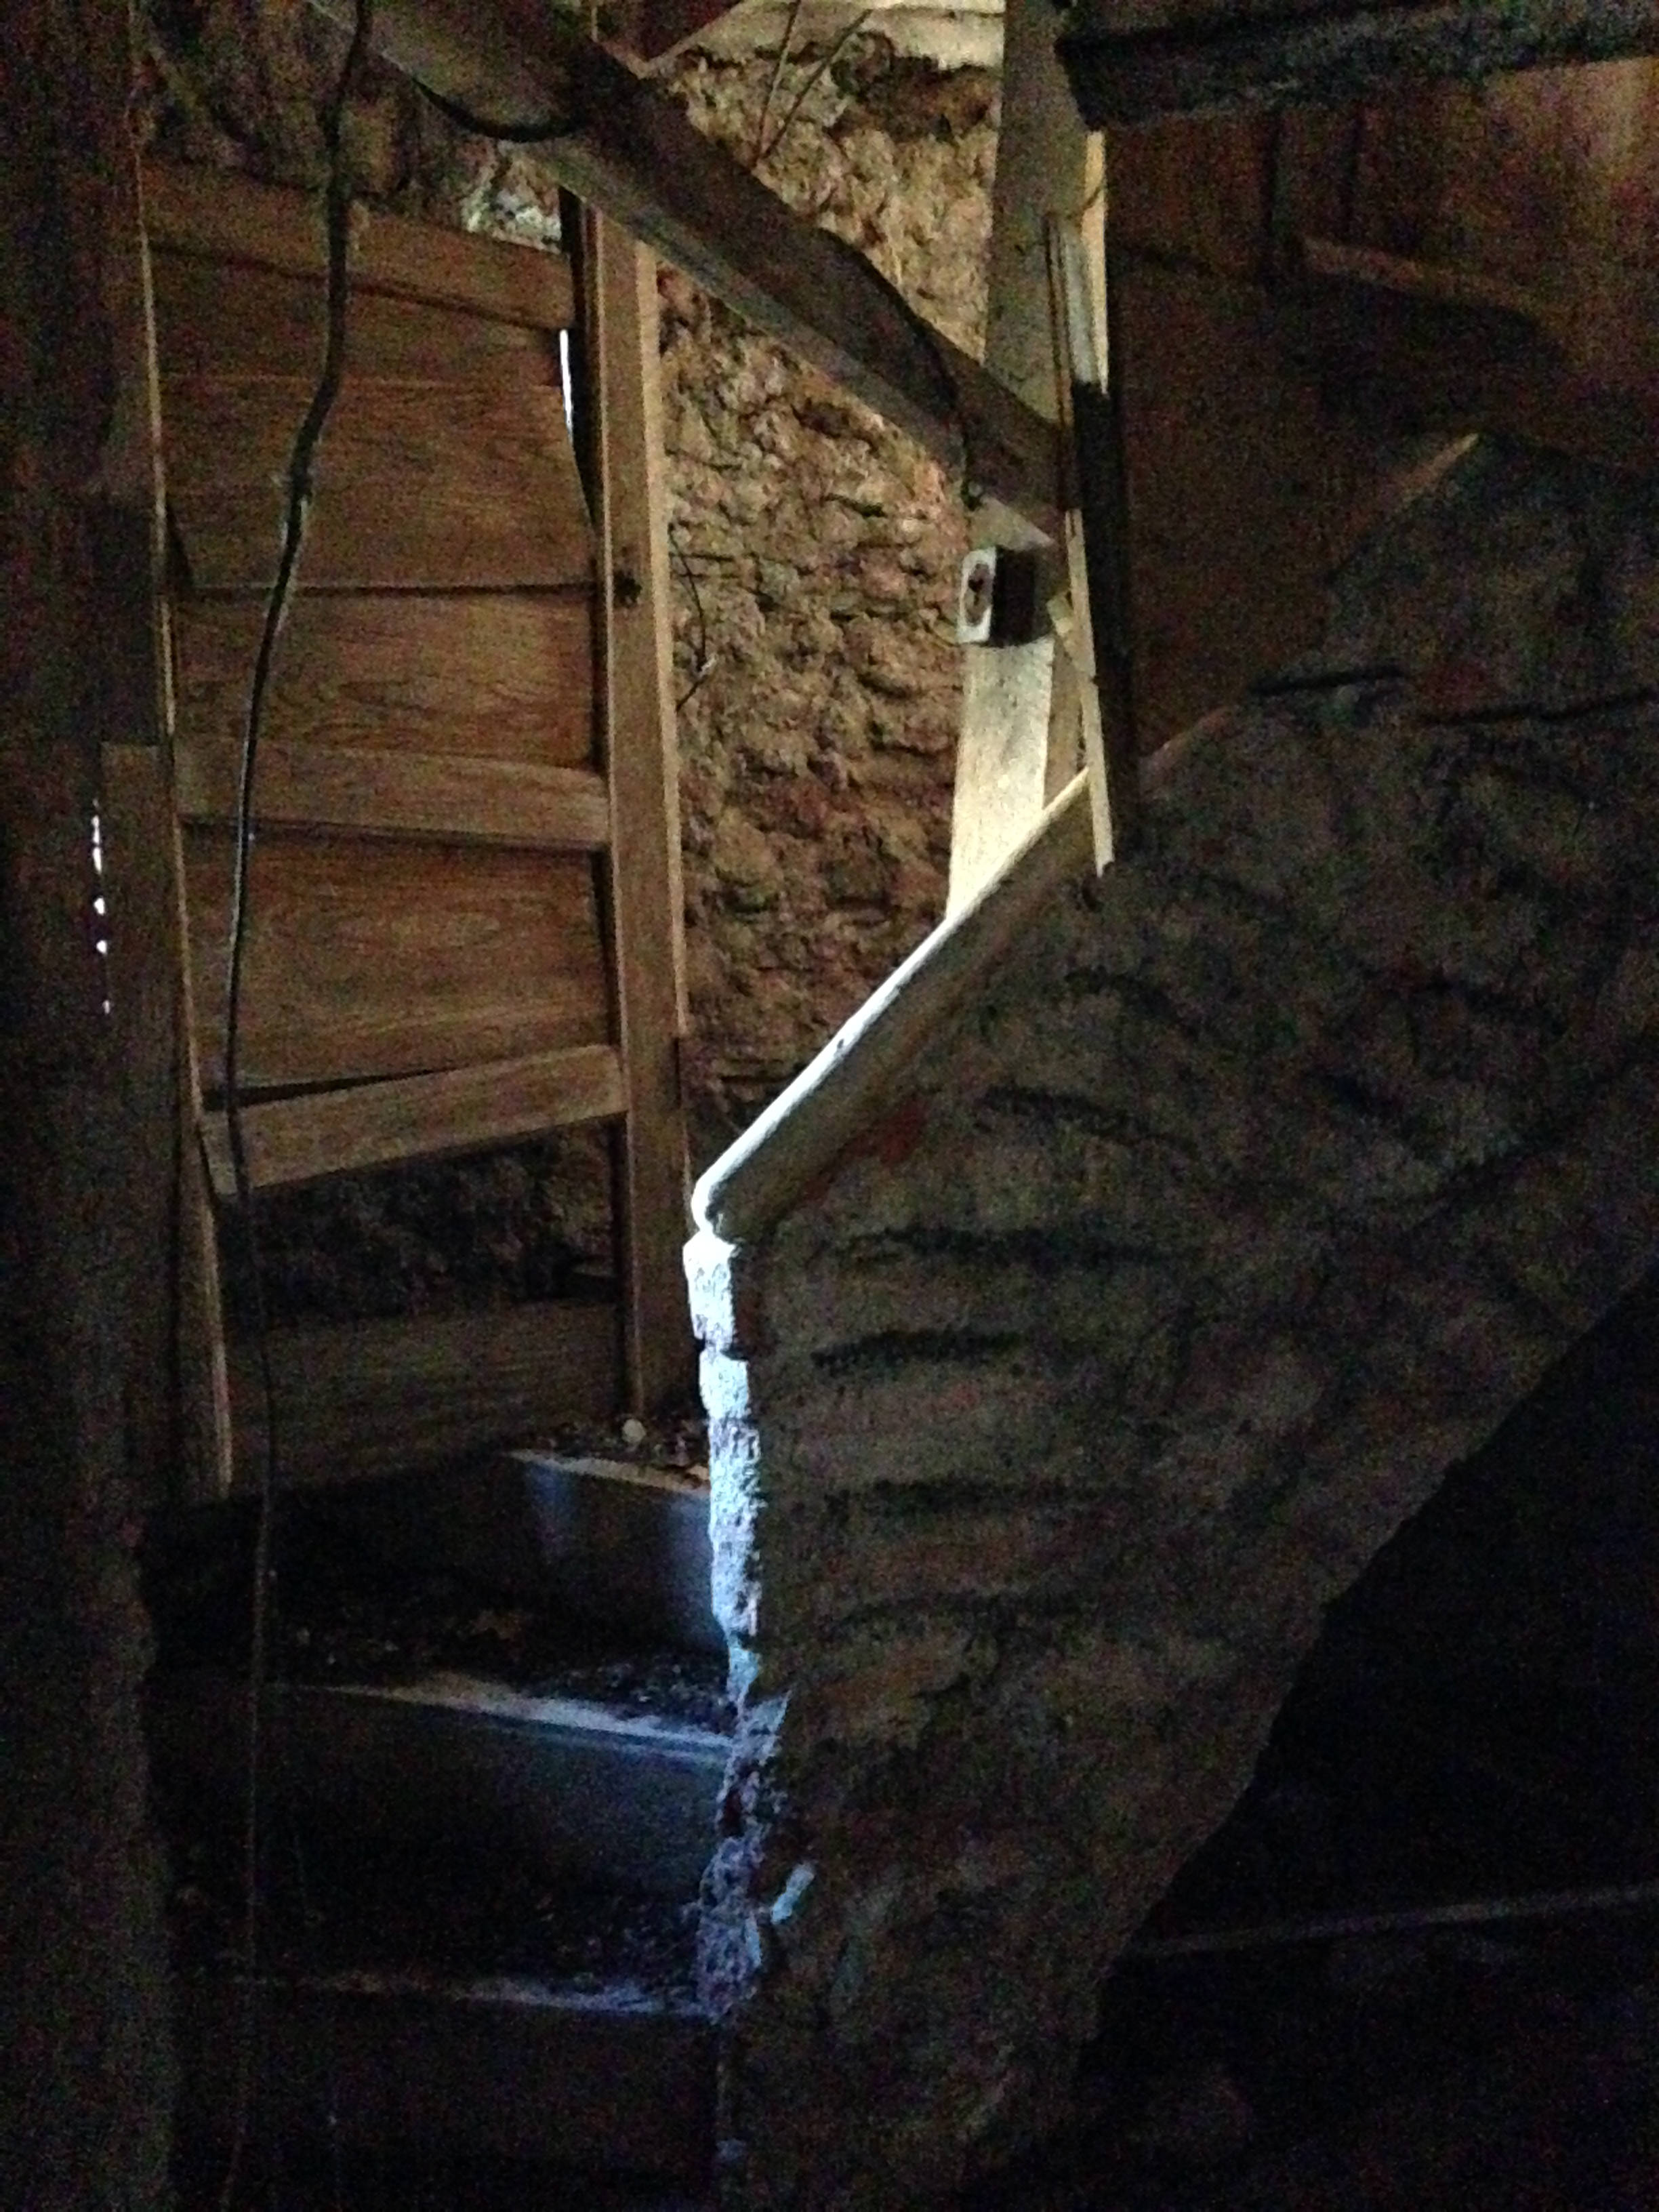 Stairs to second floor in Grotto in Conesus